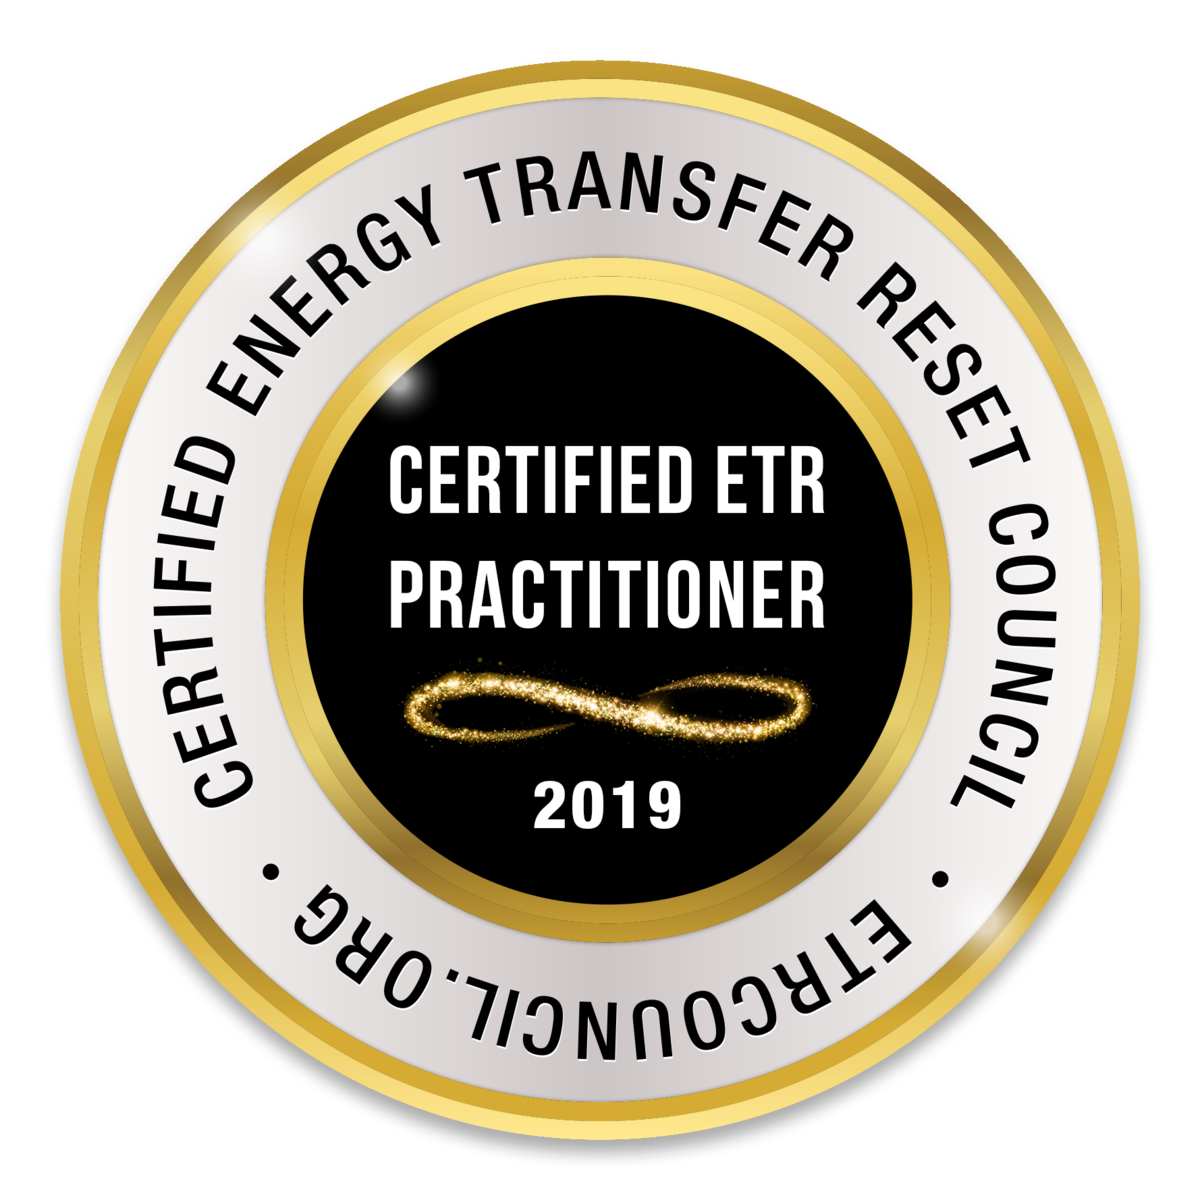 Certified Energy Transfer Reset Practitioner